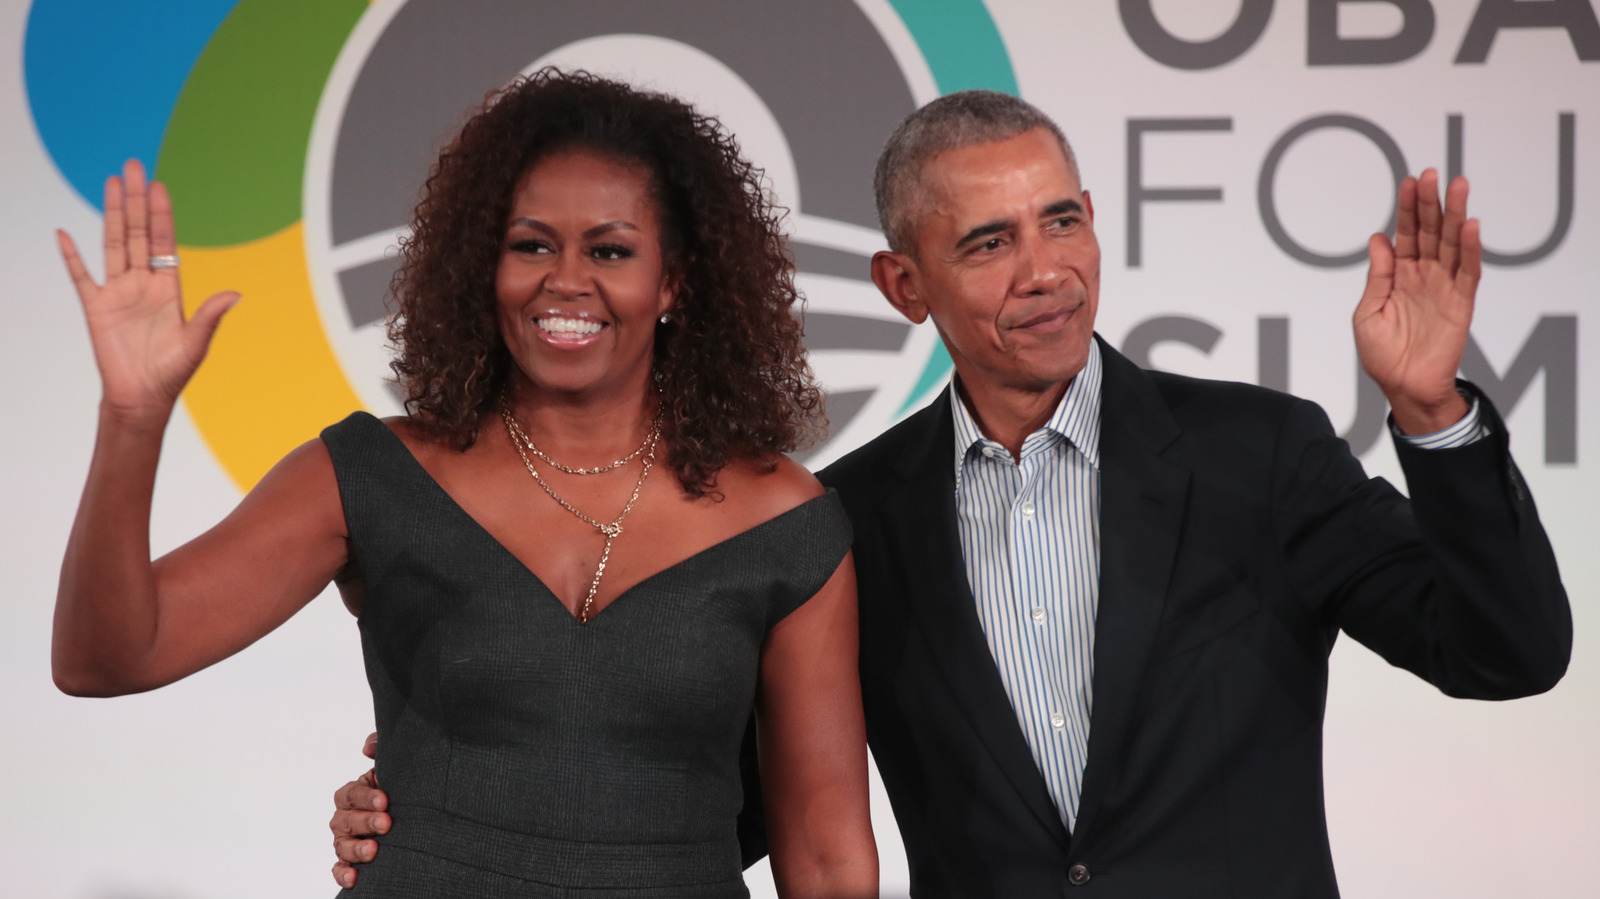 How Barack Obama's presidency affected his marriage